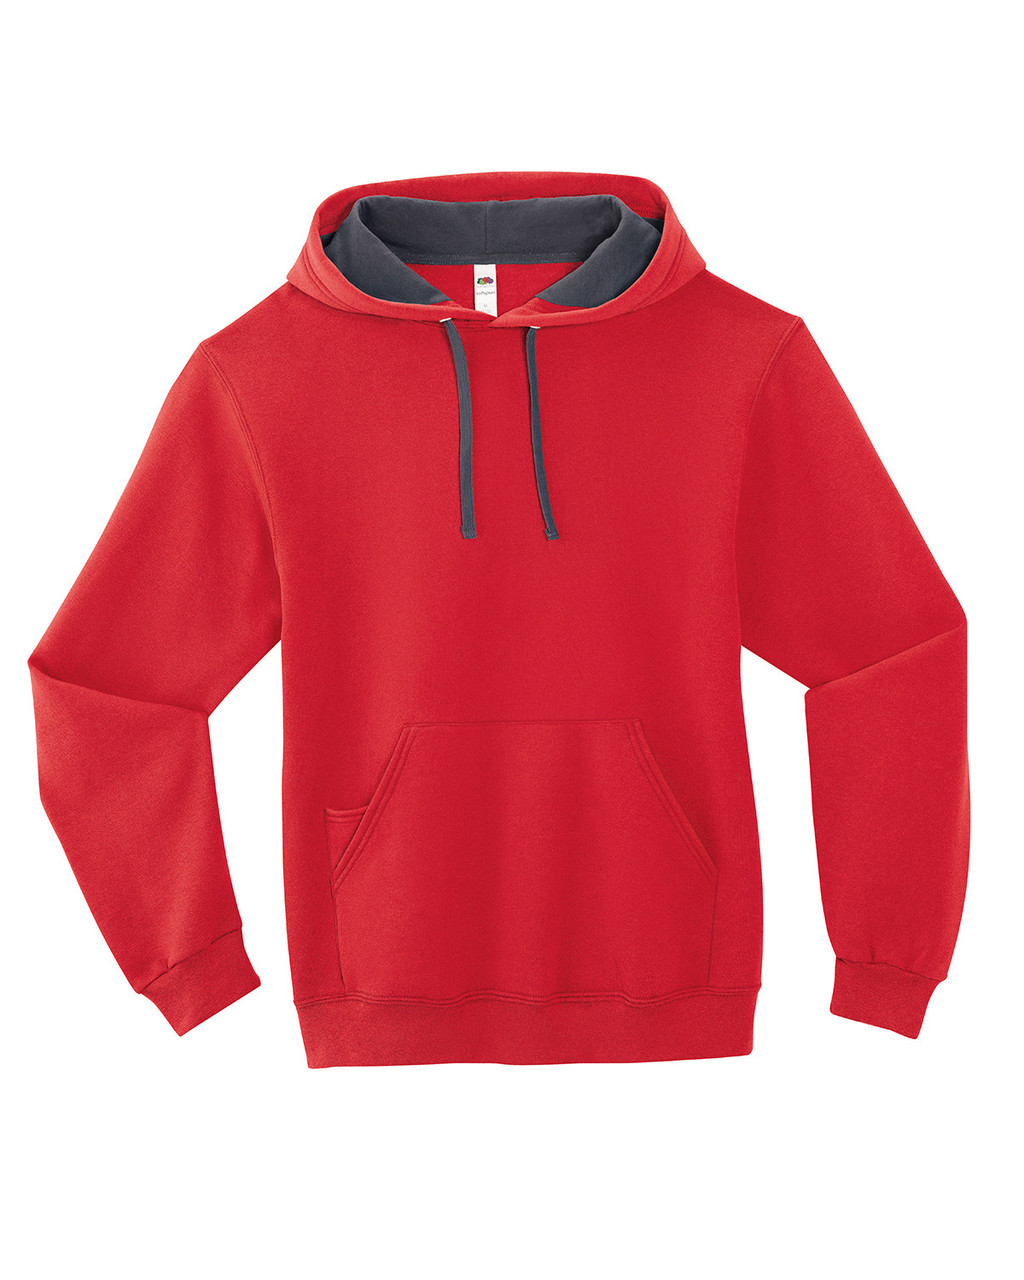 Fiery Red - SF76R Fruit of the Loom Softspun Hooded Sweatshirt | Blankclothing.ca